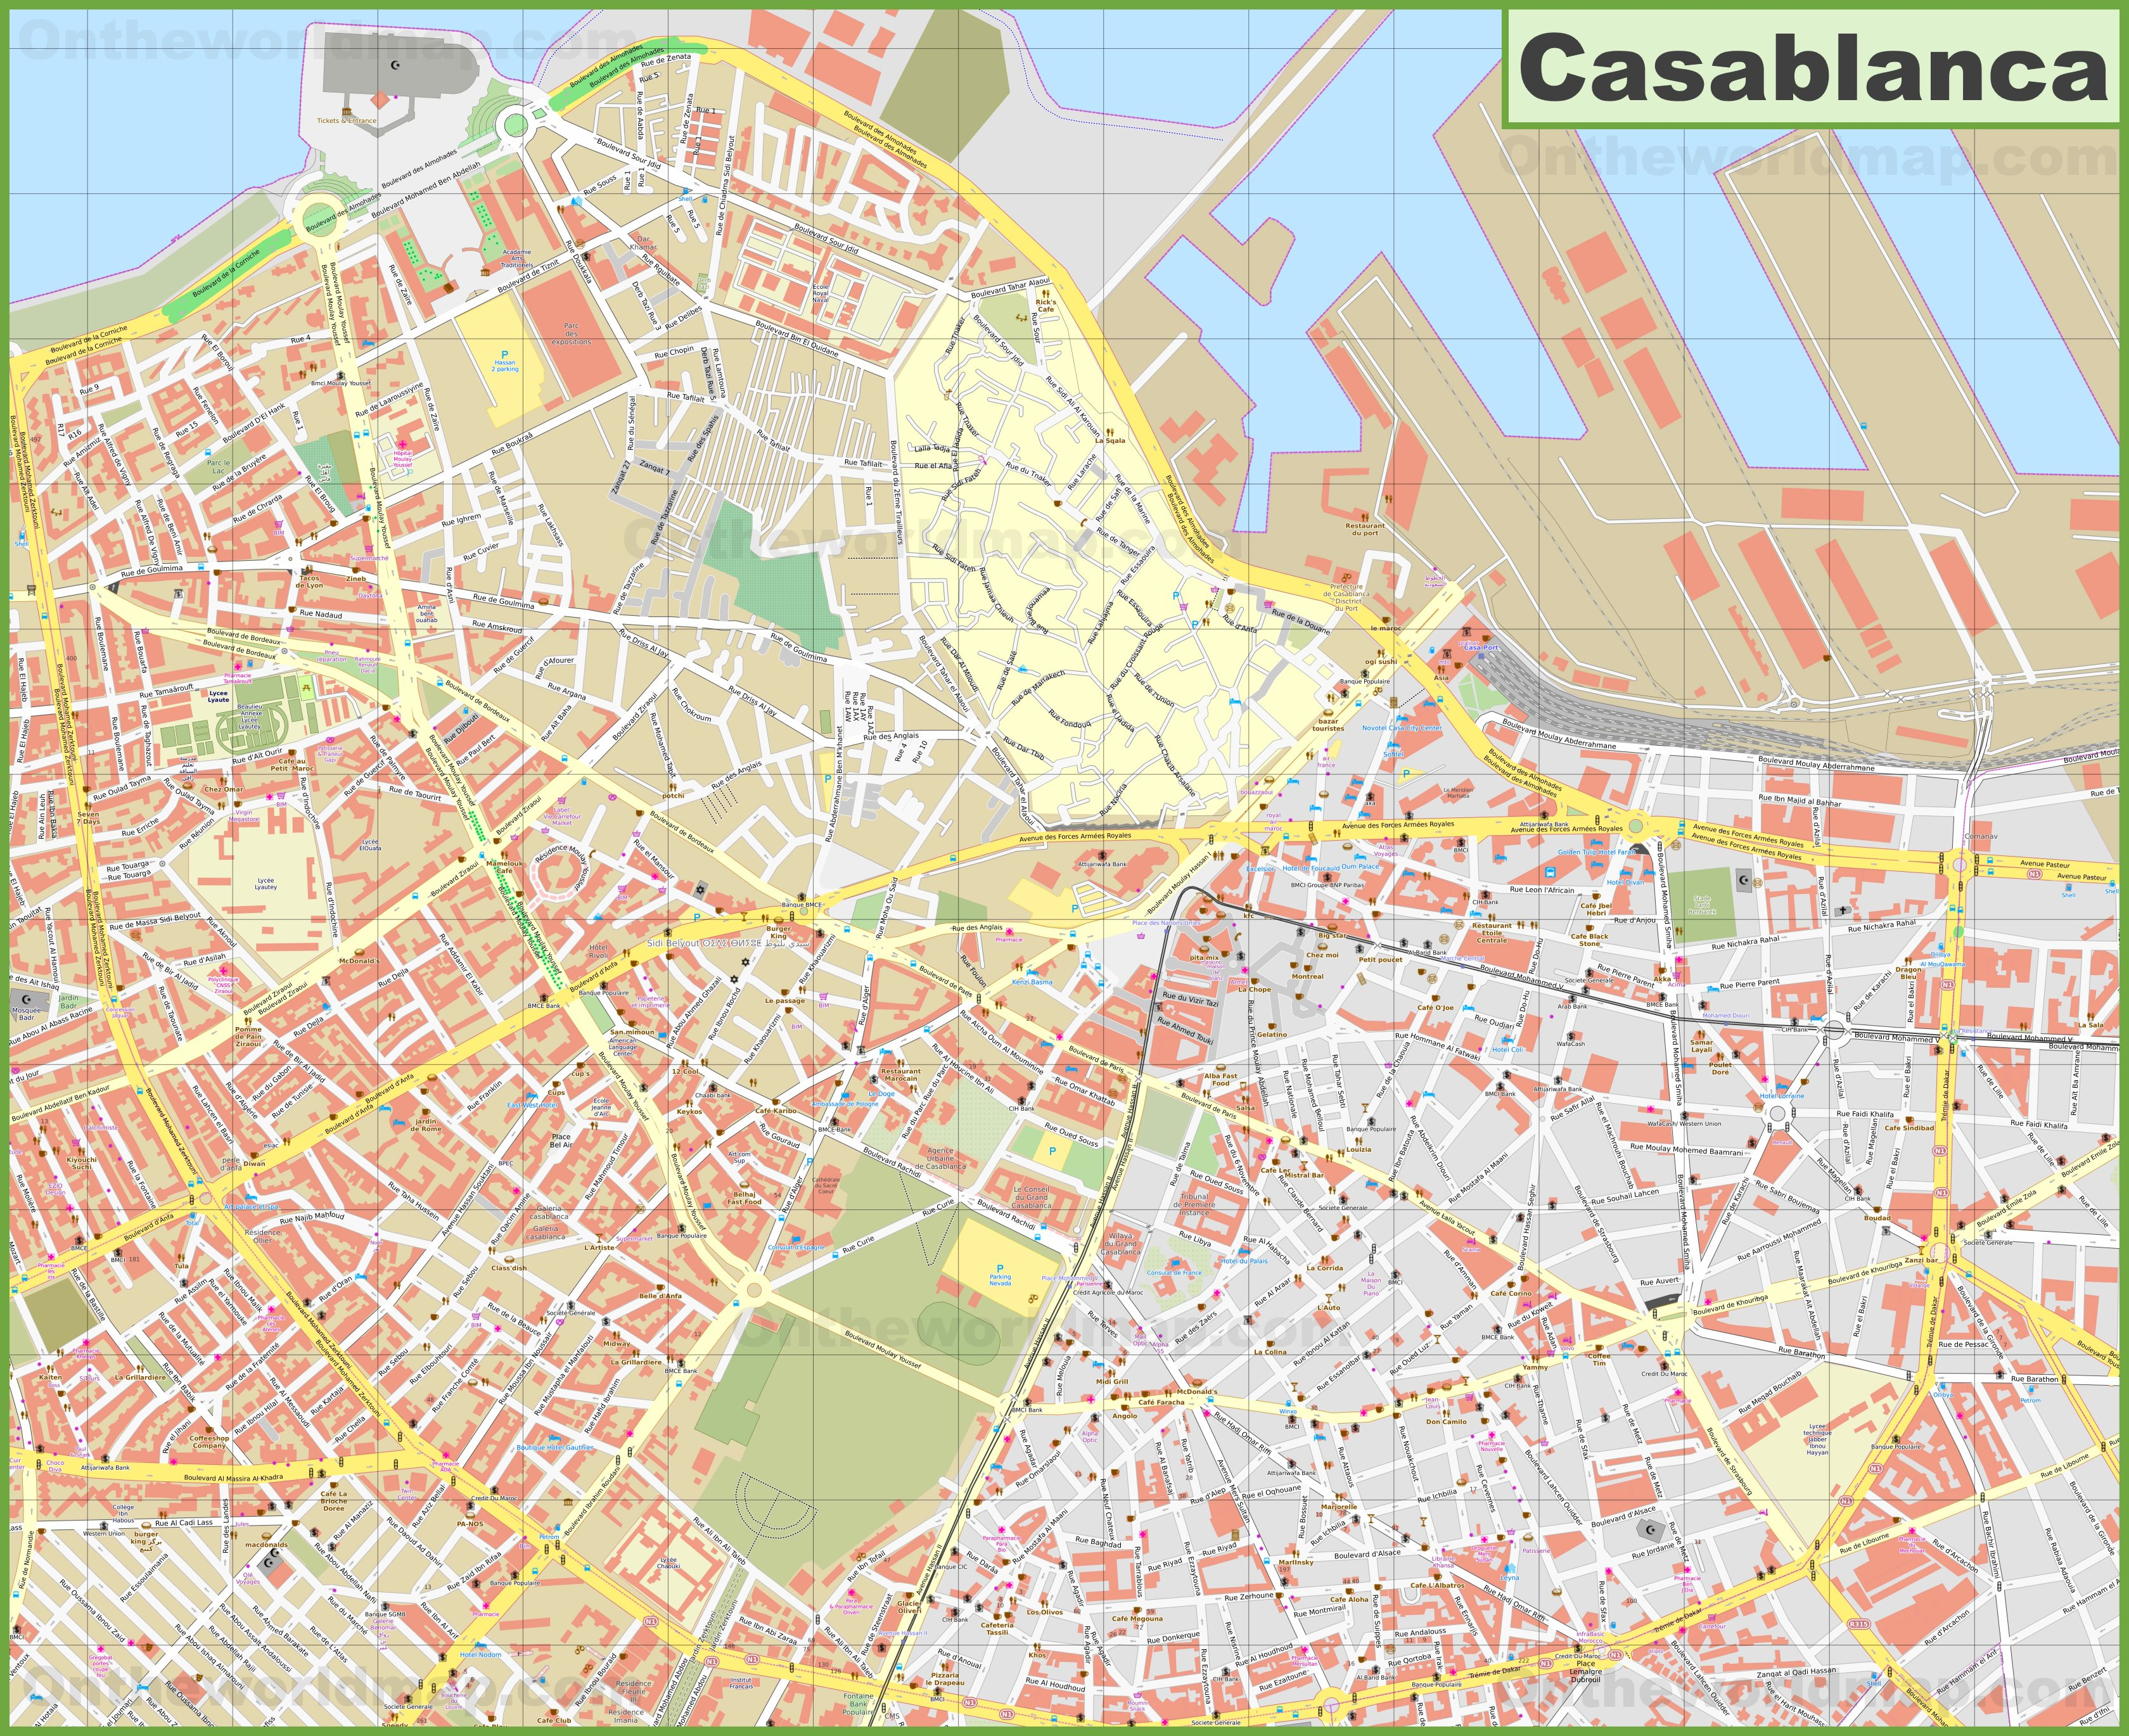 Casablanca city center Map on